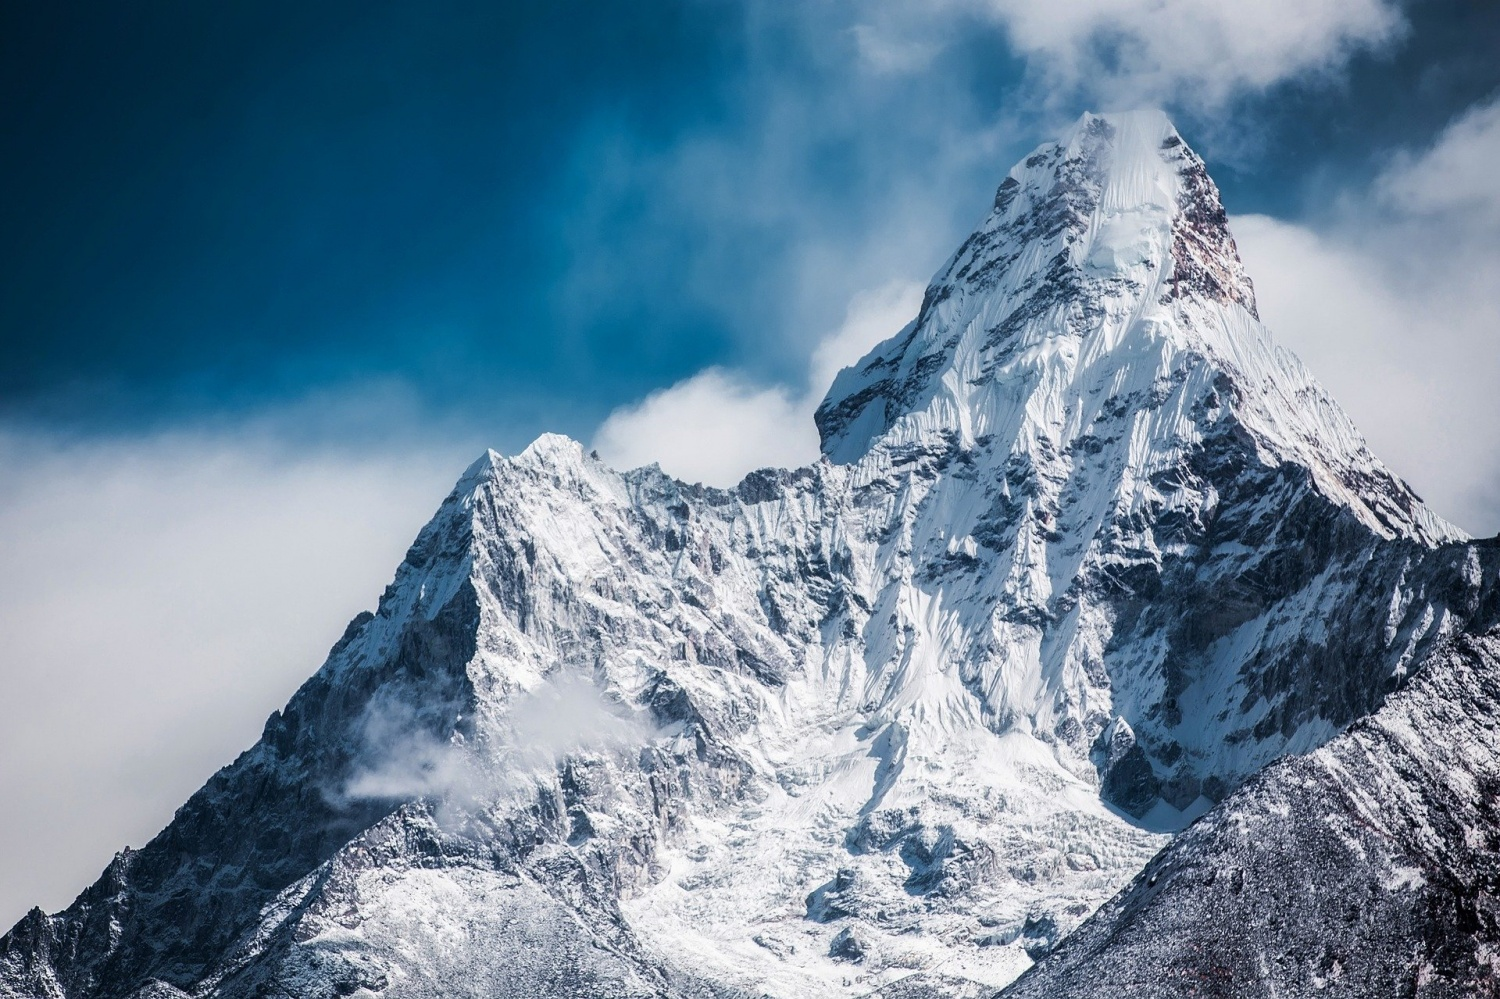 Never Before Seen Beauty of Himalayas in the Last 30 Years Captured By The Lens, Thanks To Coronavirus Lockdown!